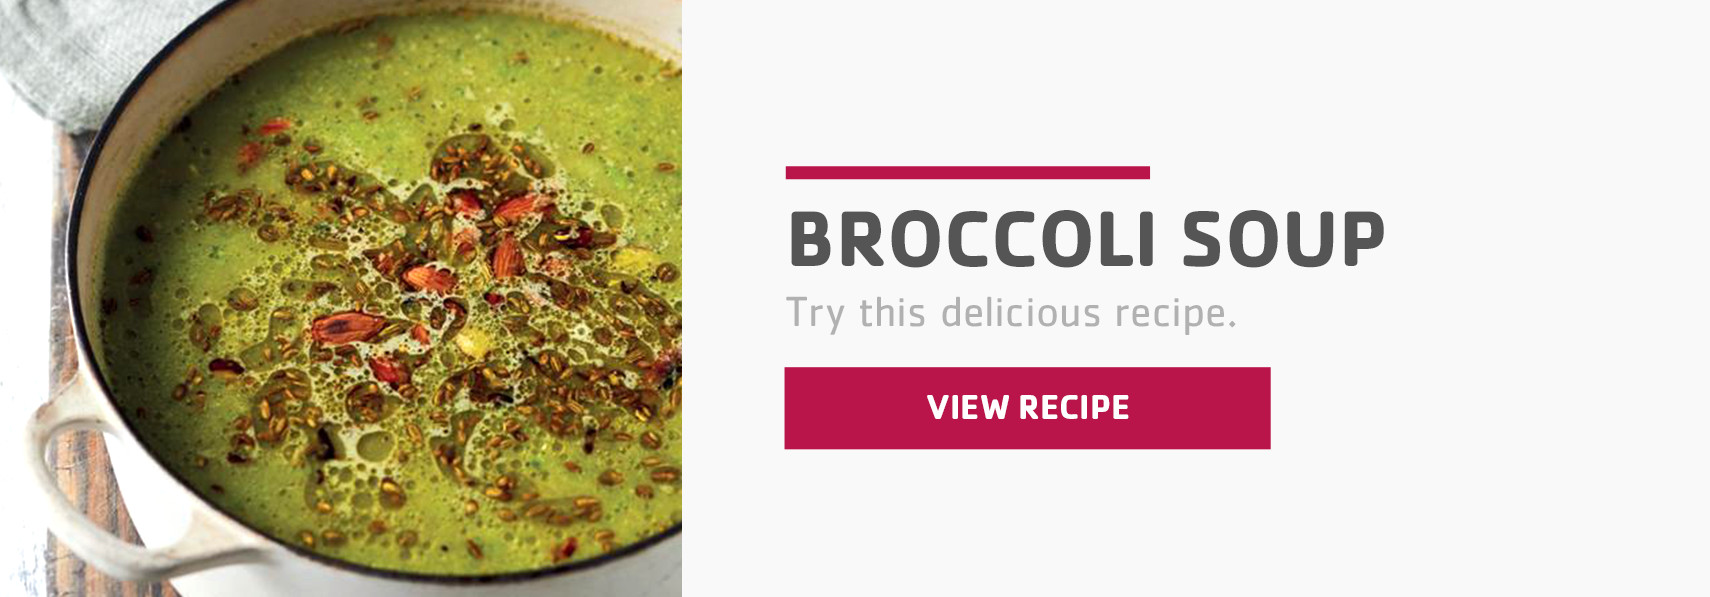 Broccoli soup recipe listing page banner.jpg